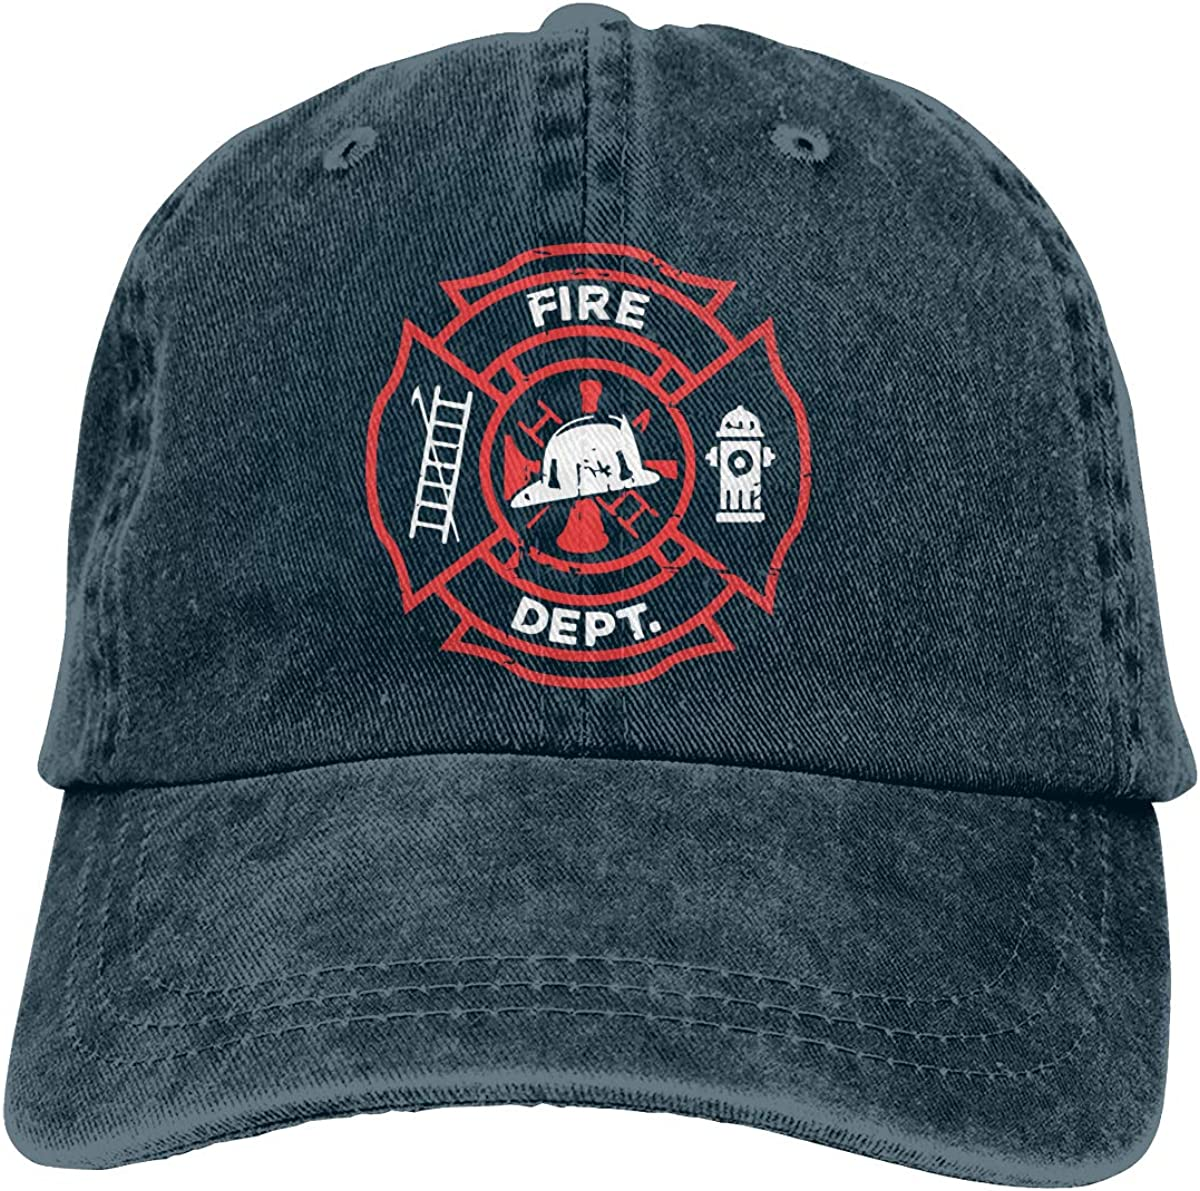 Distressed Firefighter Boy Classic Hip Hop Baseball Cap 100/% Cotton Unisex Soft Adjustable Size